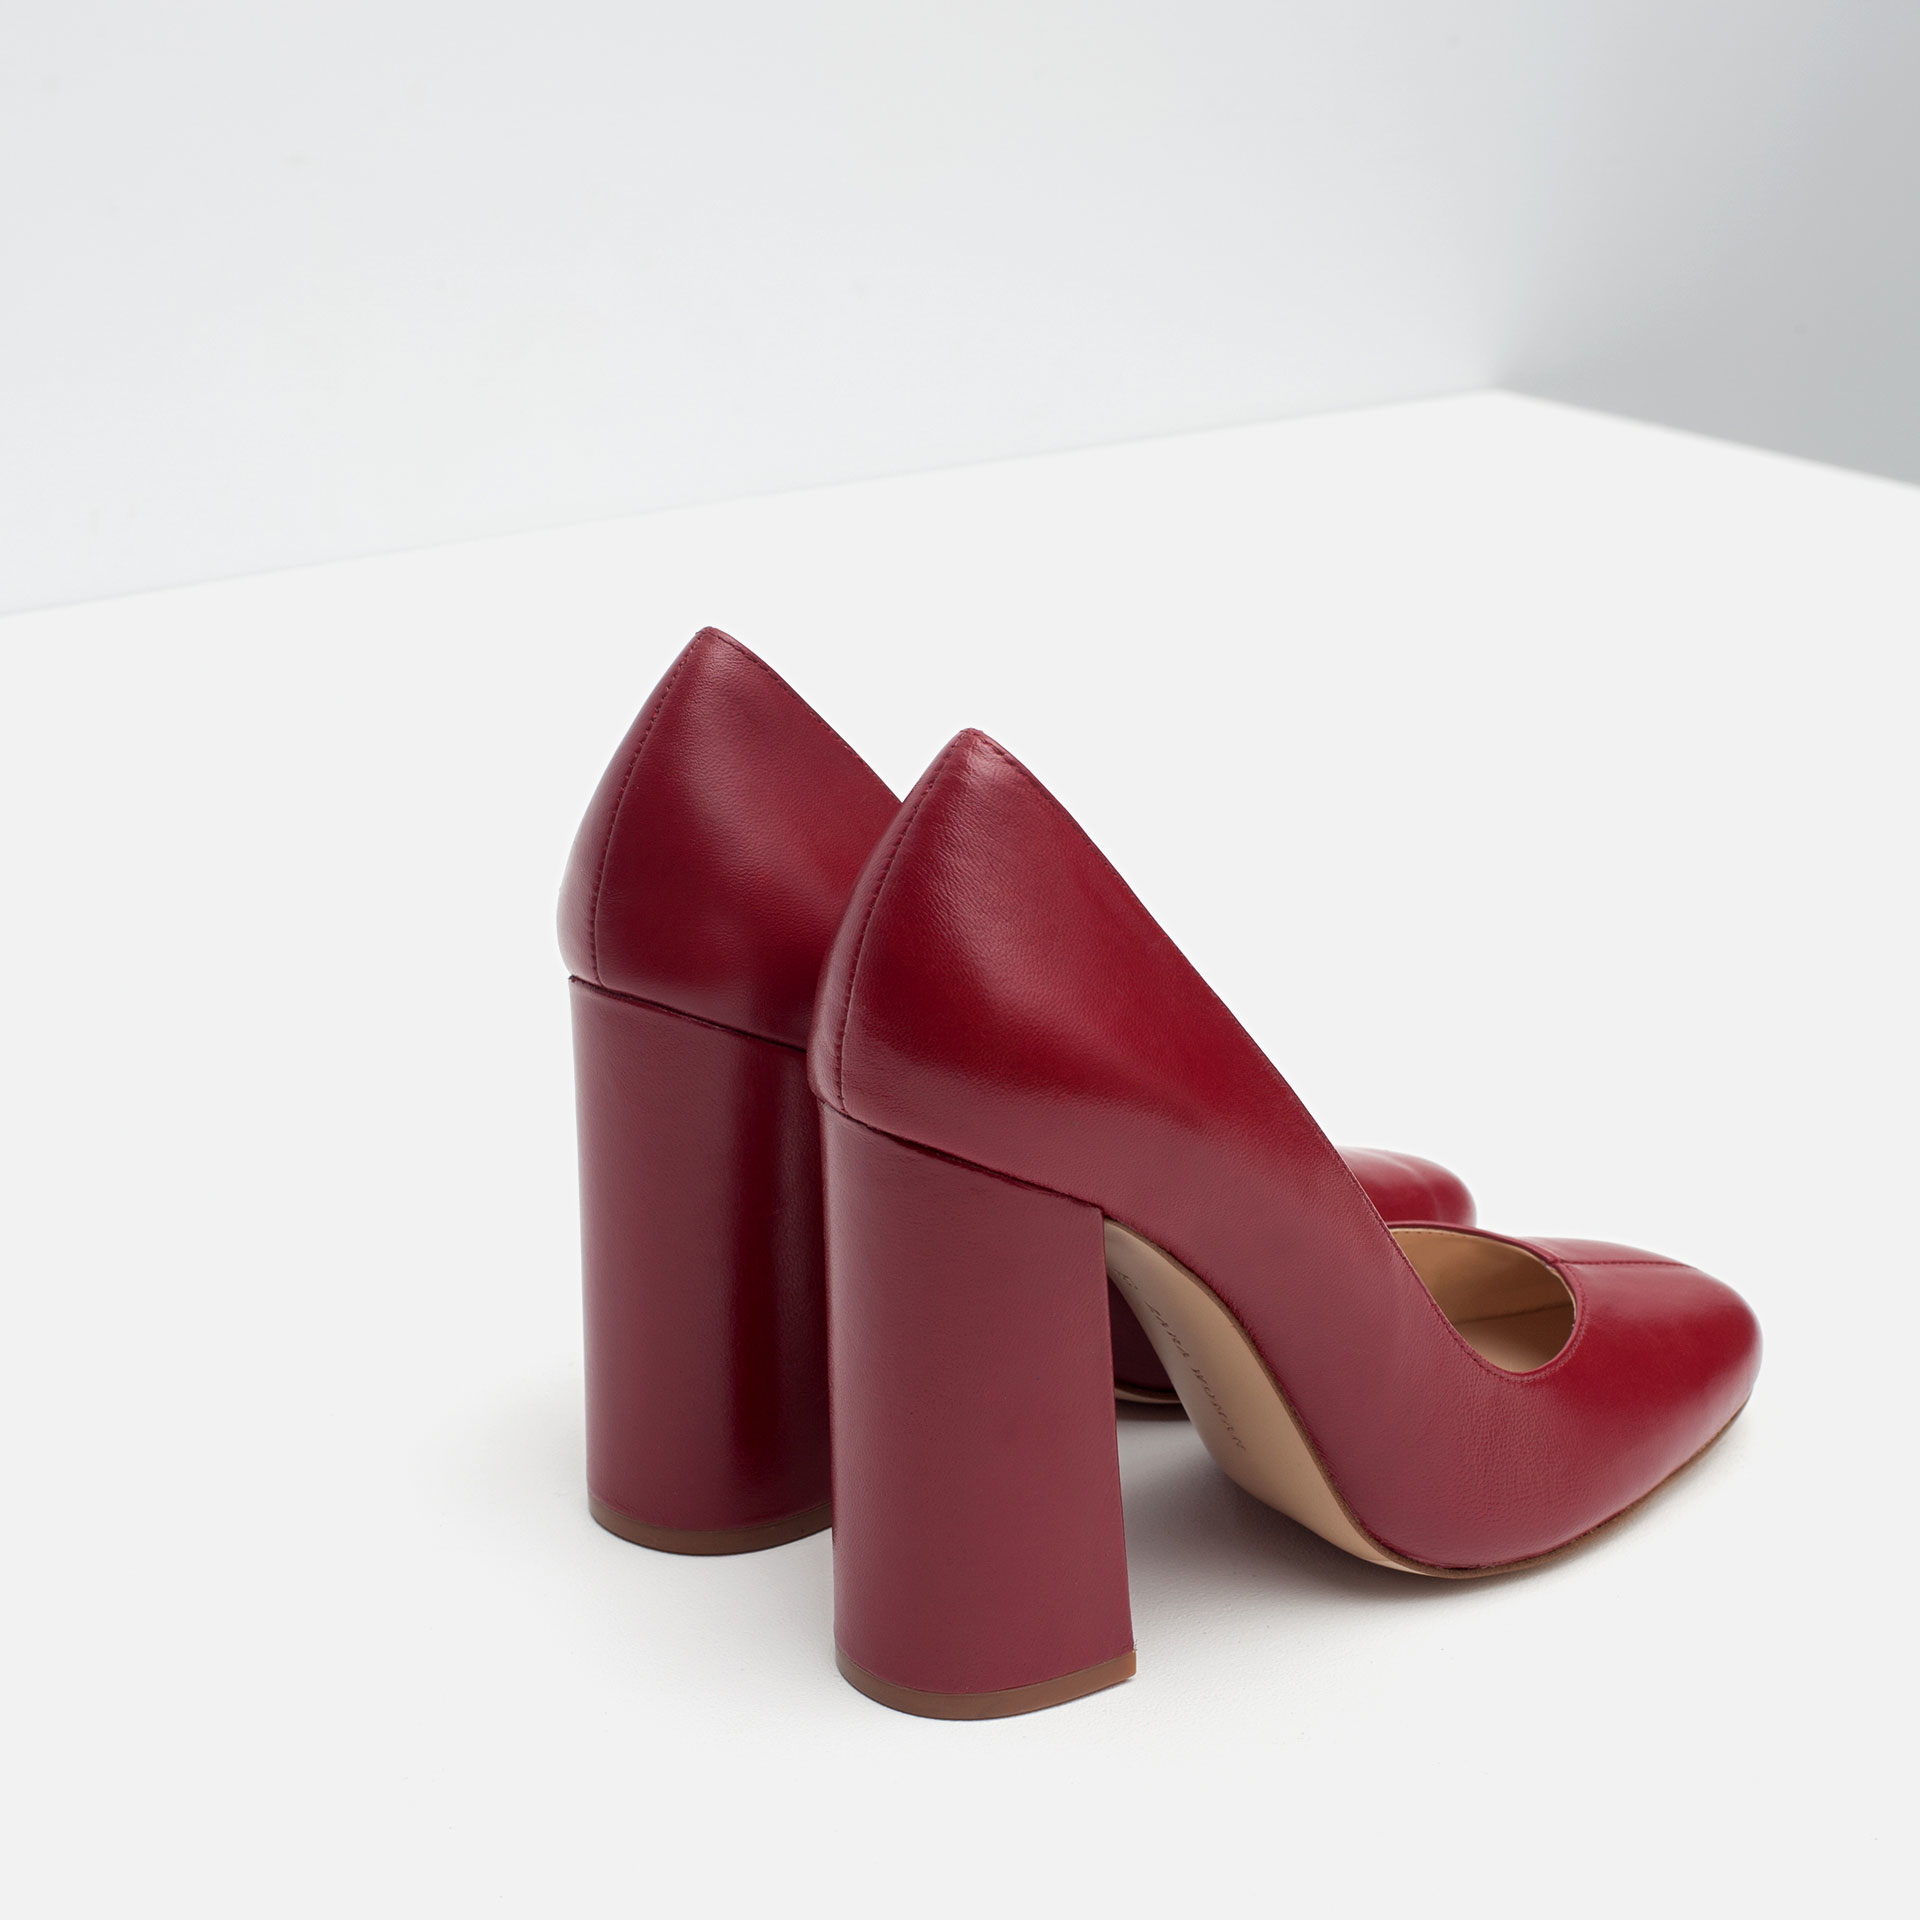 Zara Block Heel Leather High Heel Shoes in Red | Lyst